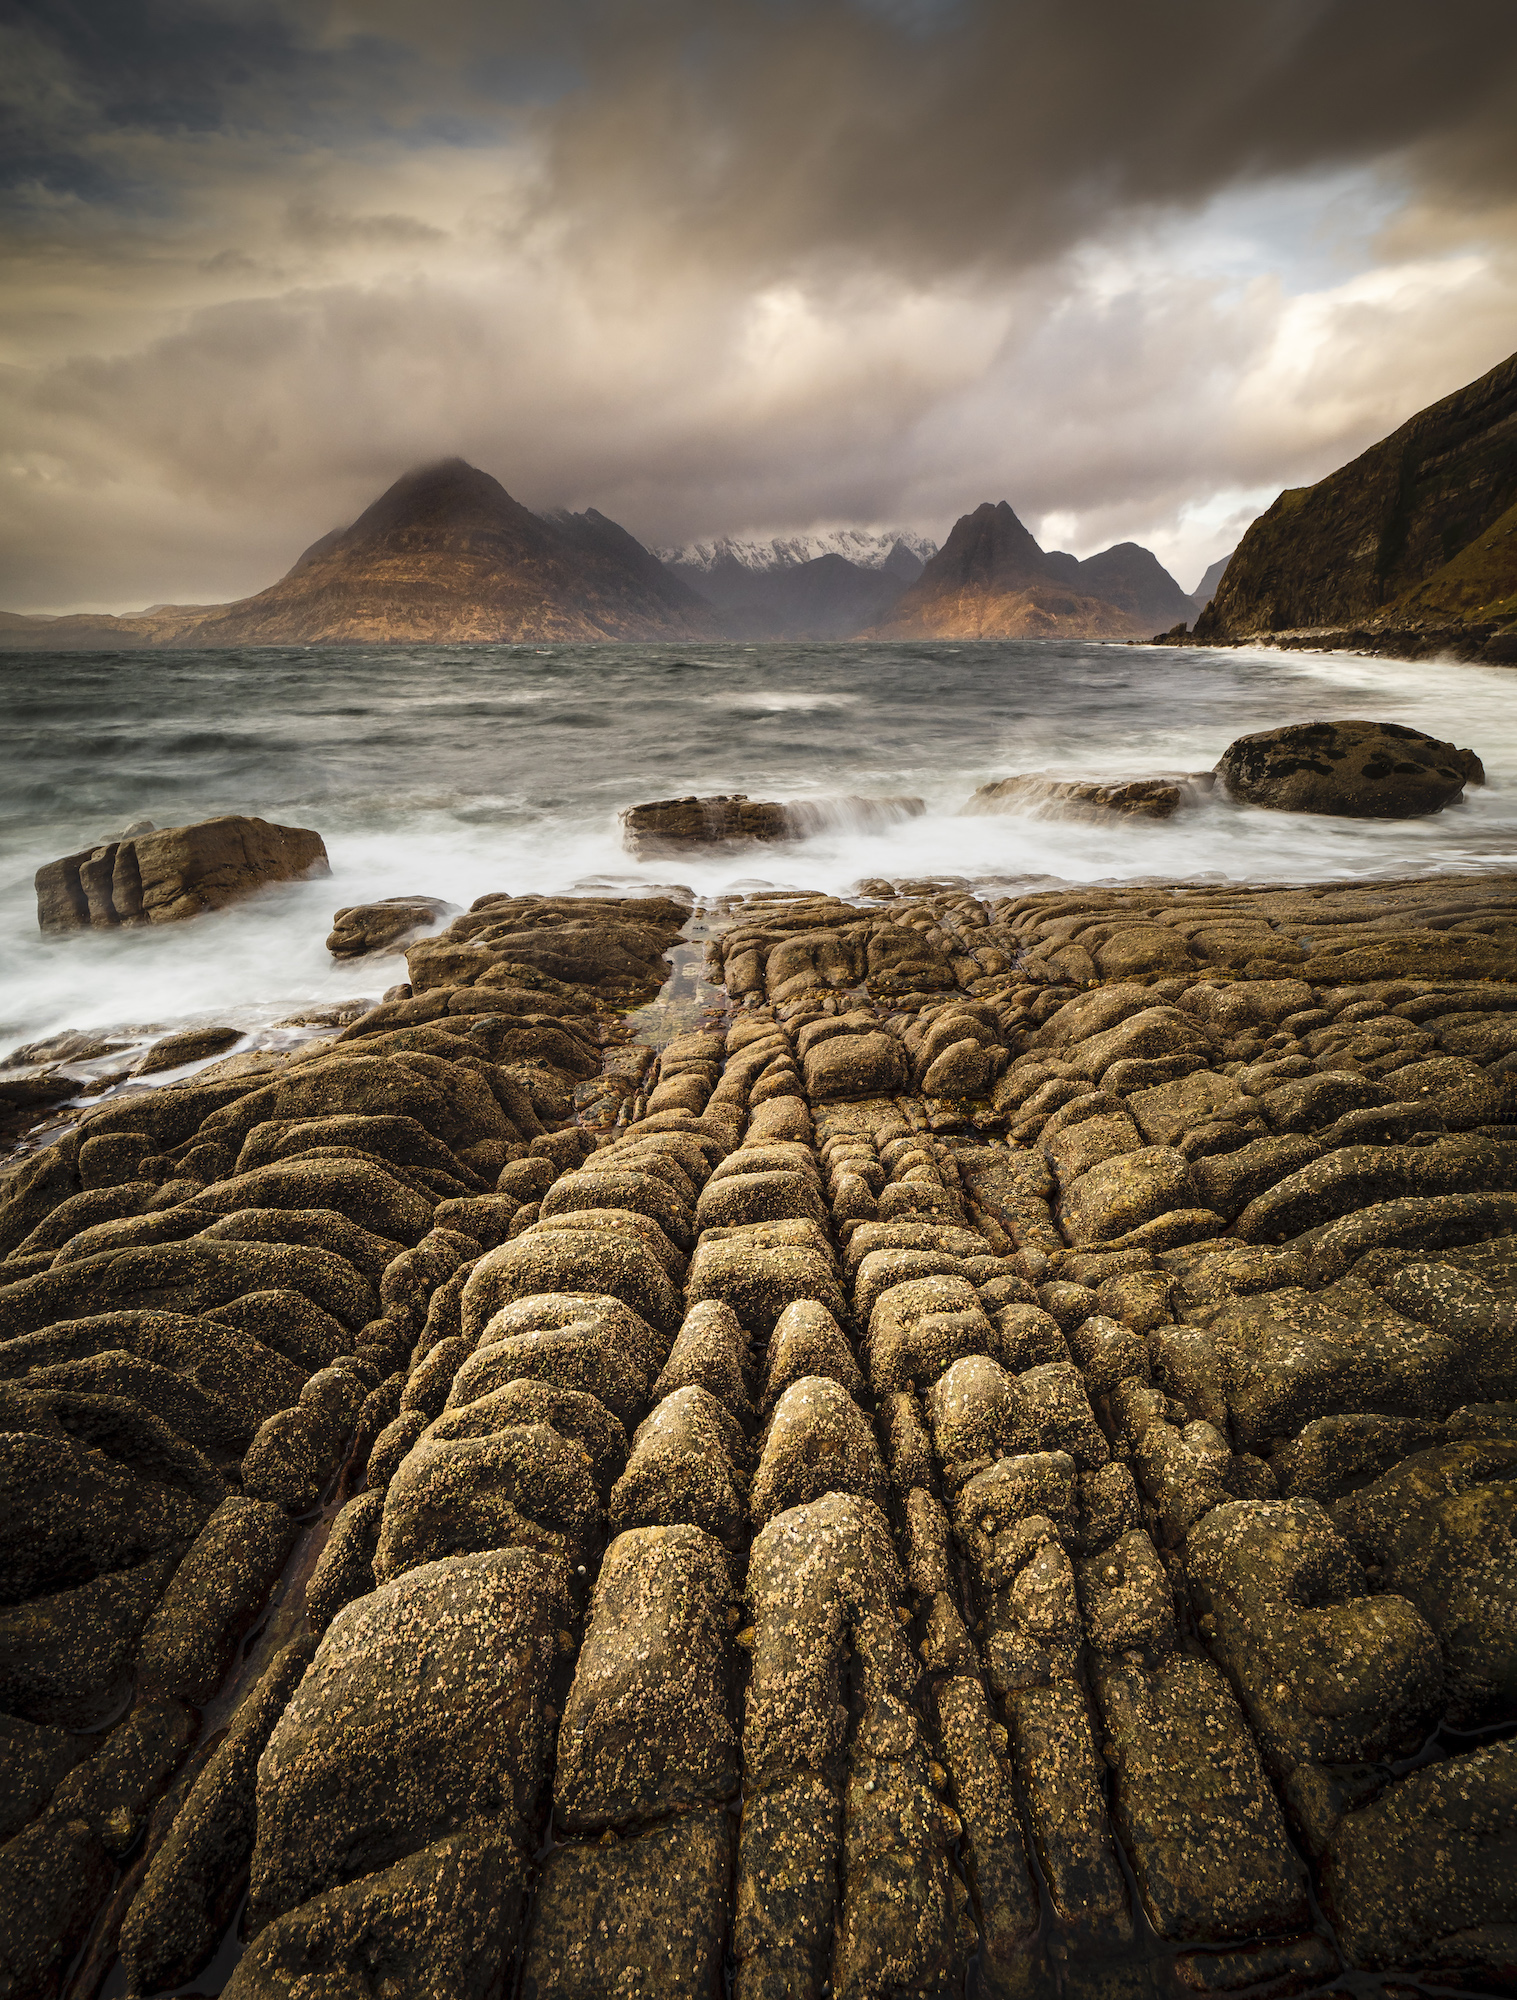 Lines in the rocks at Elgol leading to the Black Cullin mountains across the bay